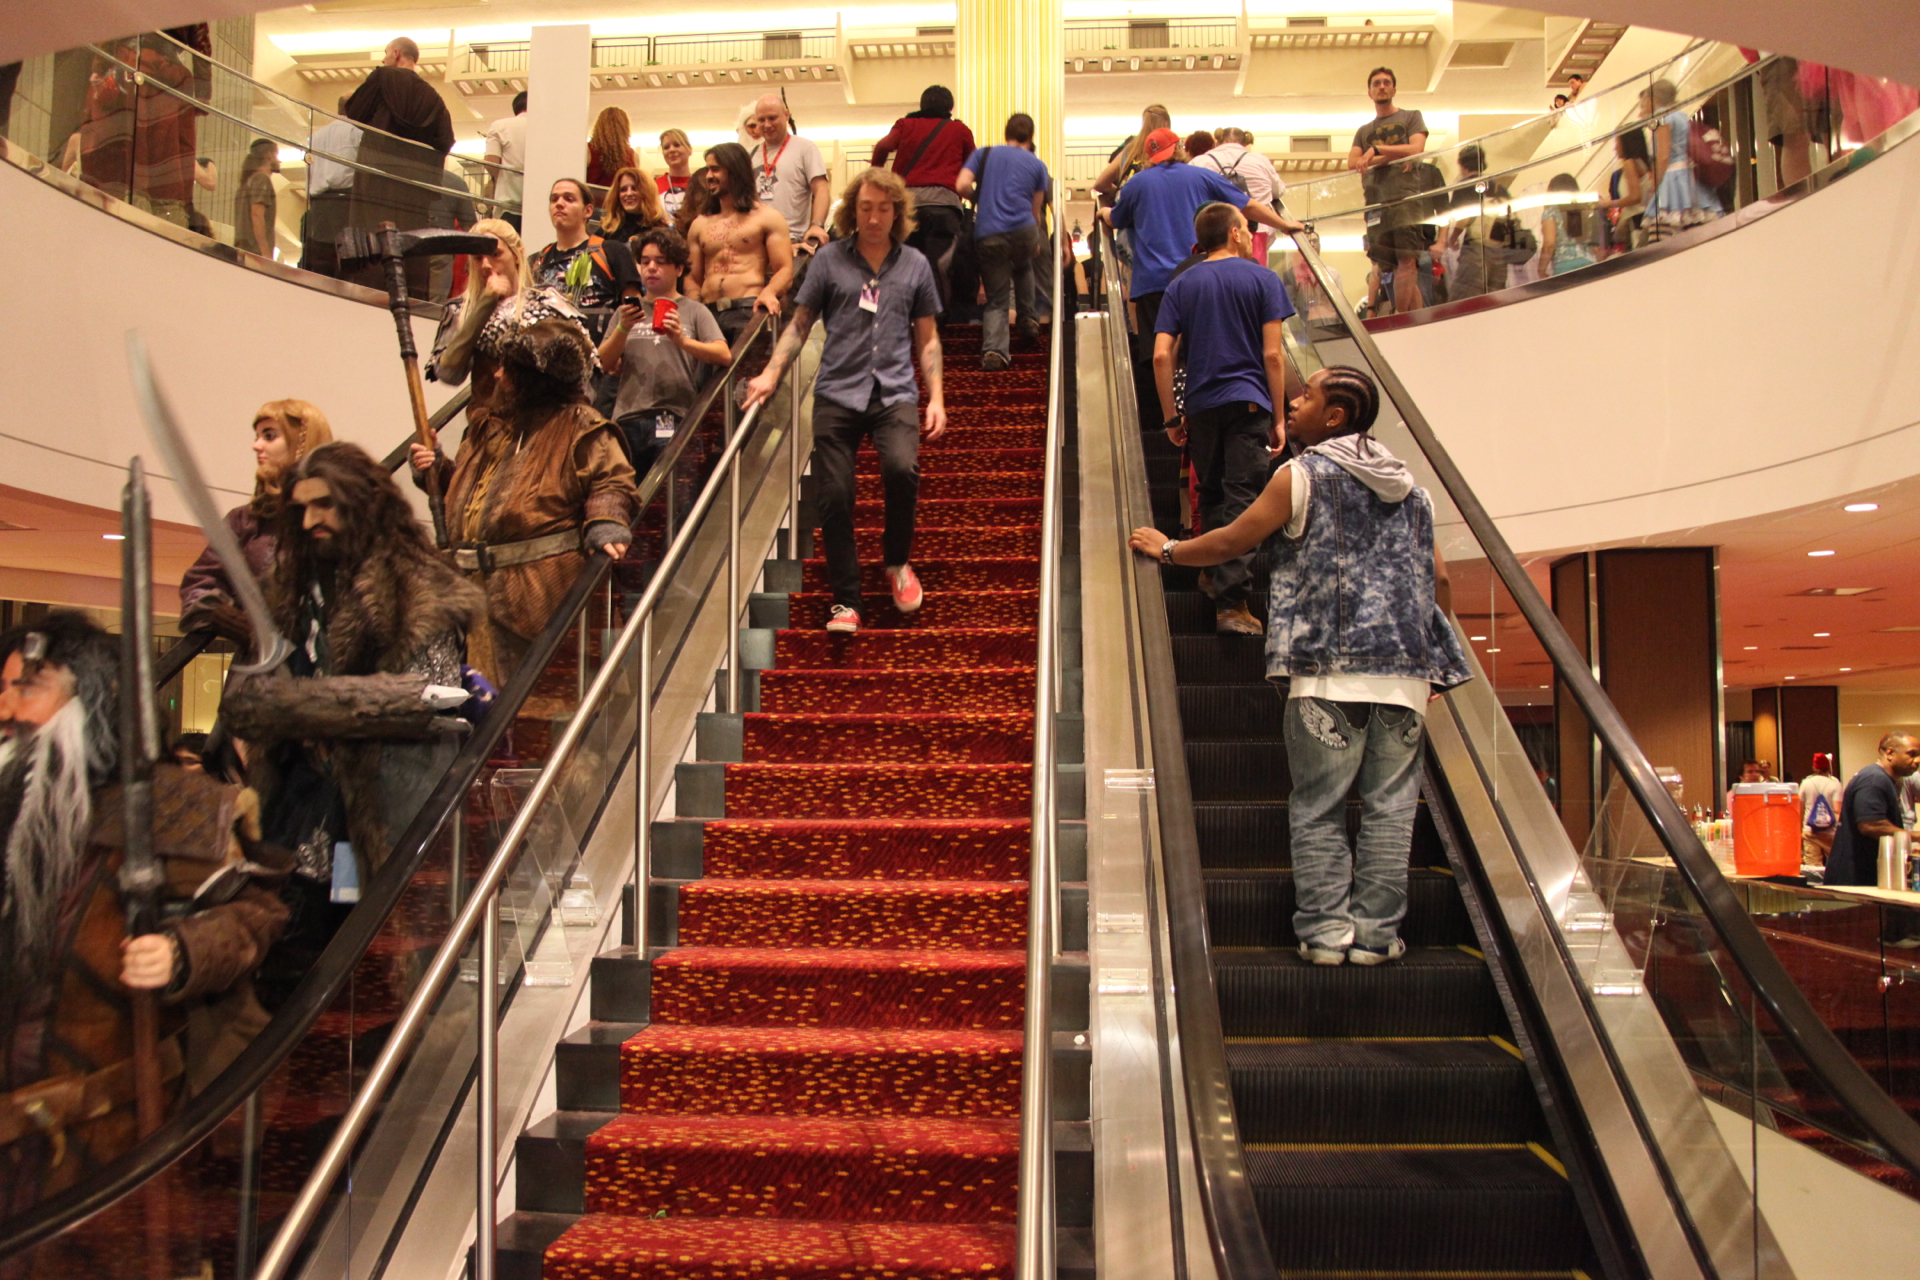 Some warriors prefer escalators